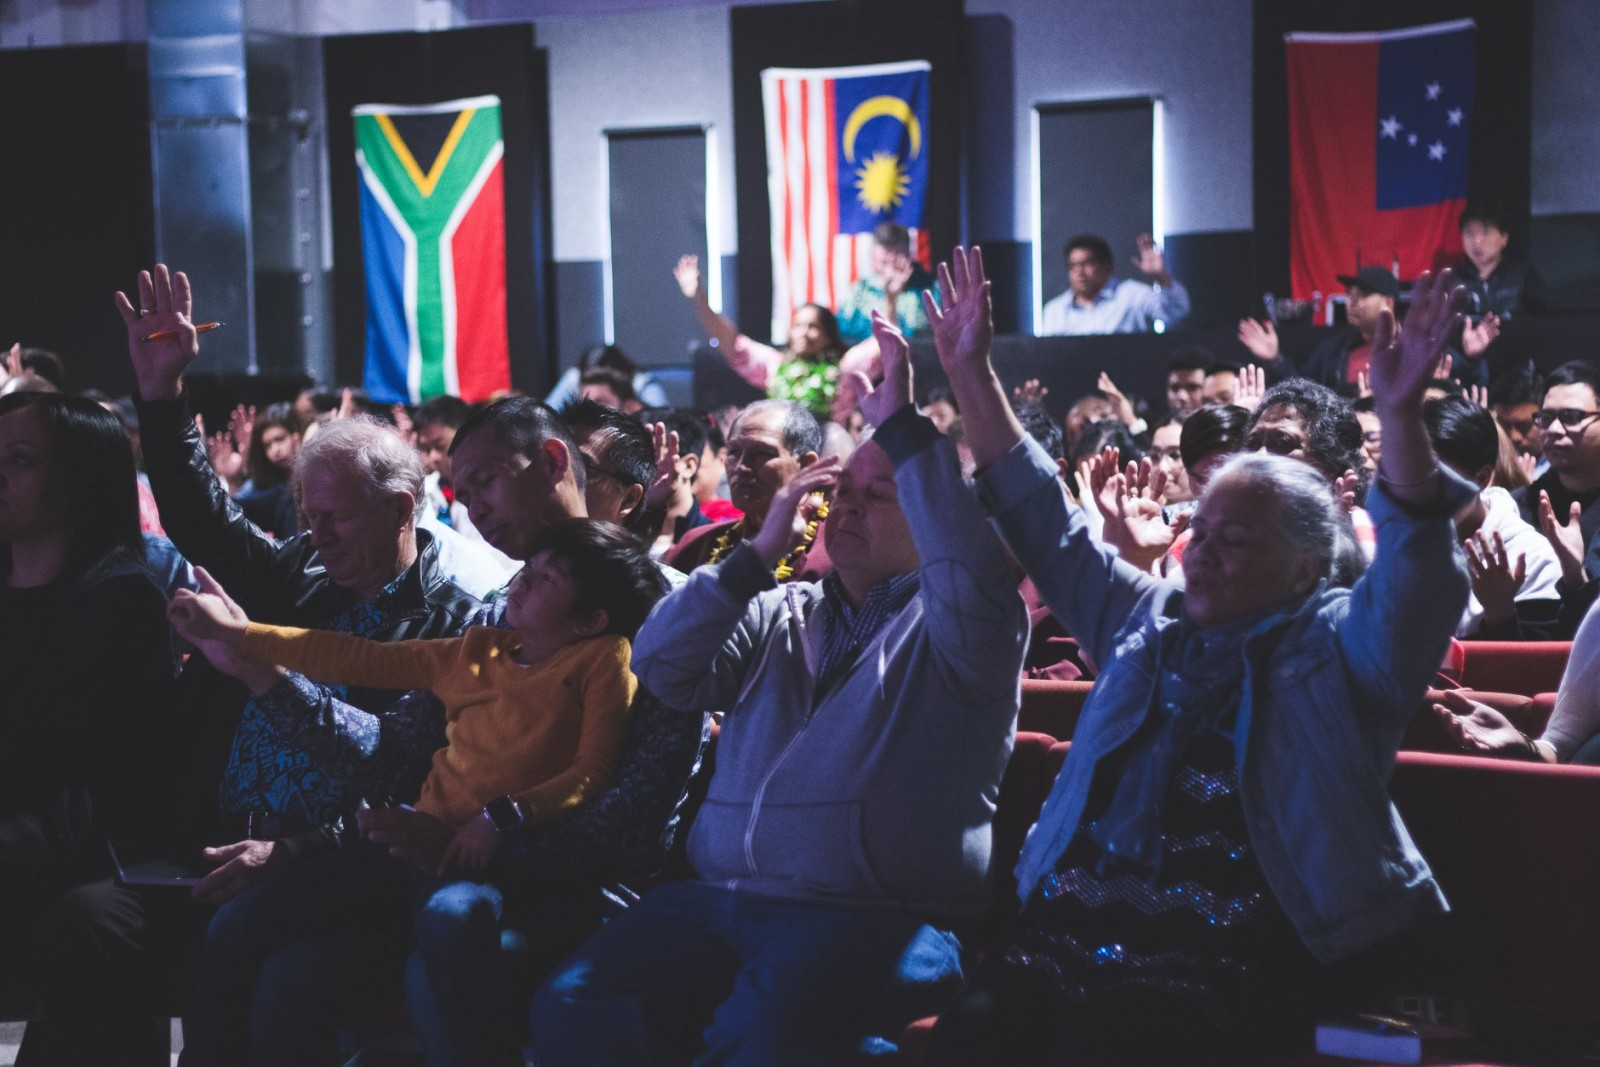 We Are a Multi-Cultural, Multi-Generational, Socially Responsible Church that Makes Disciples